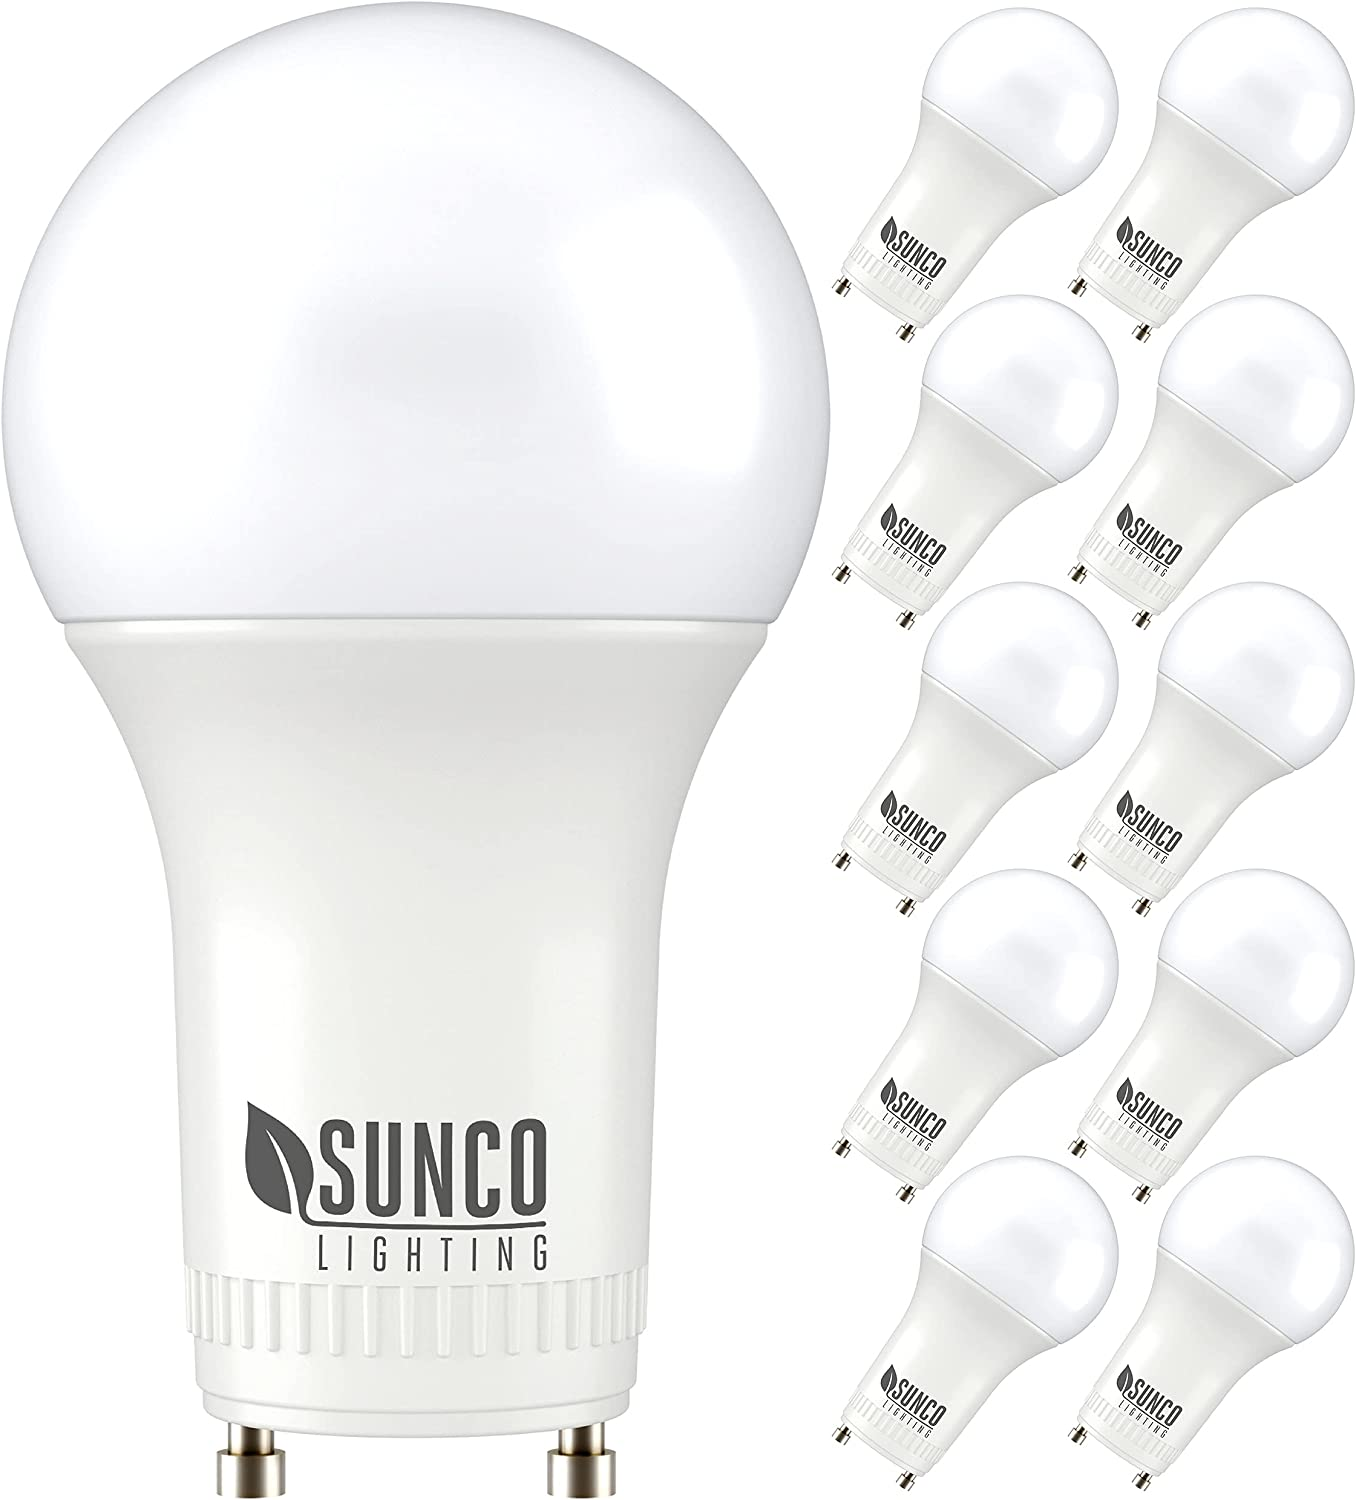 Sunco Lighting 10 Pack A19 LED Replacement 9W=60W CFL 2021 autumn online shopping and winter new Bulb 500